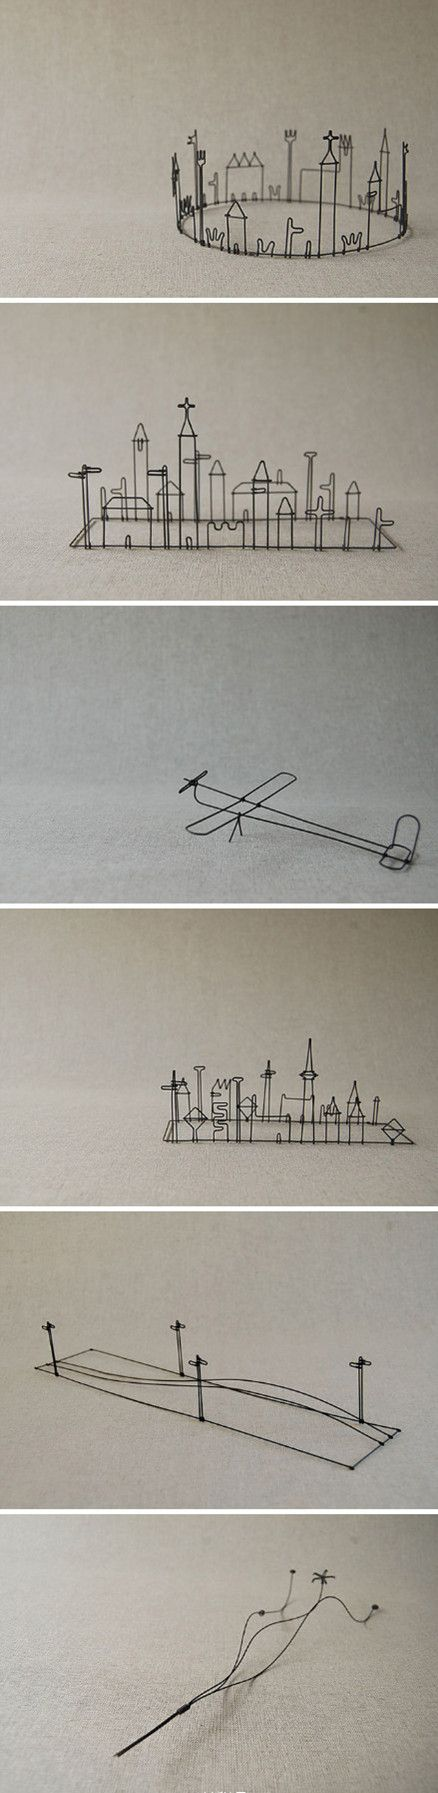 These wire art pieces are so simple and so expressive. | 铁艺 ...